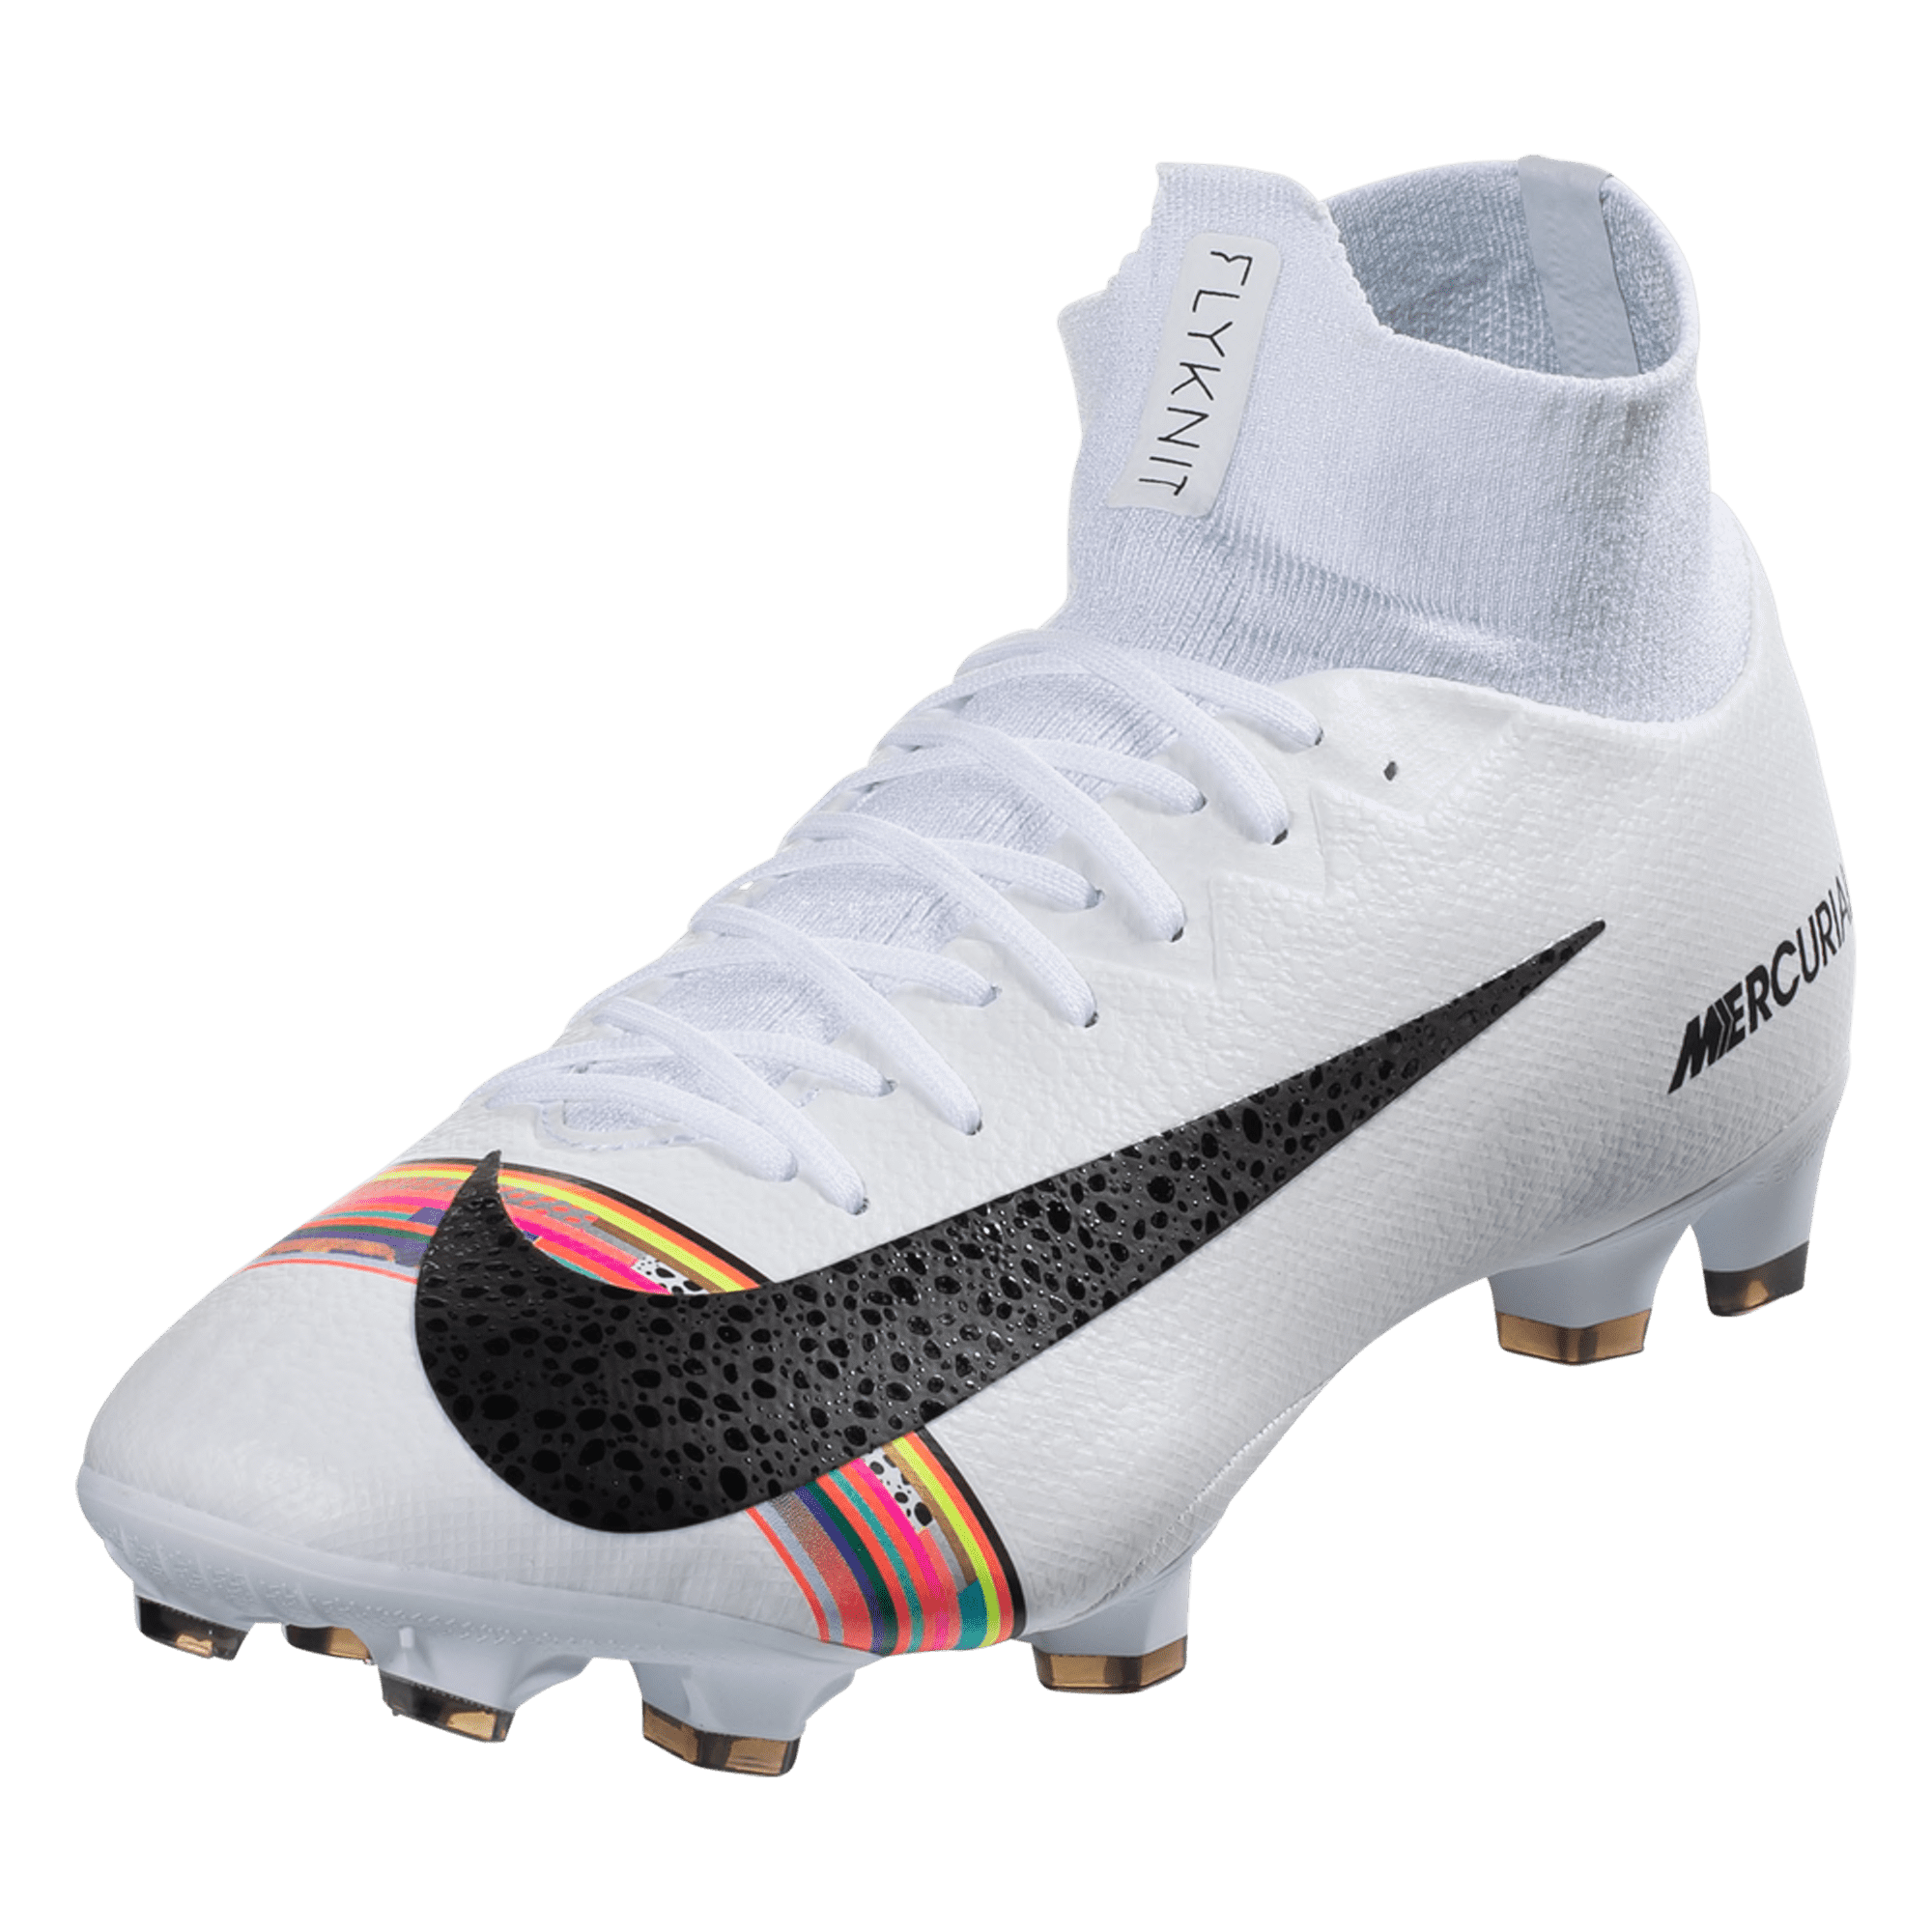 a13c0f69098 Nike Mercurial Superfly VI Pro SE FG Soccer Cleat – Platinum   Black   White